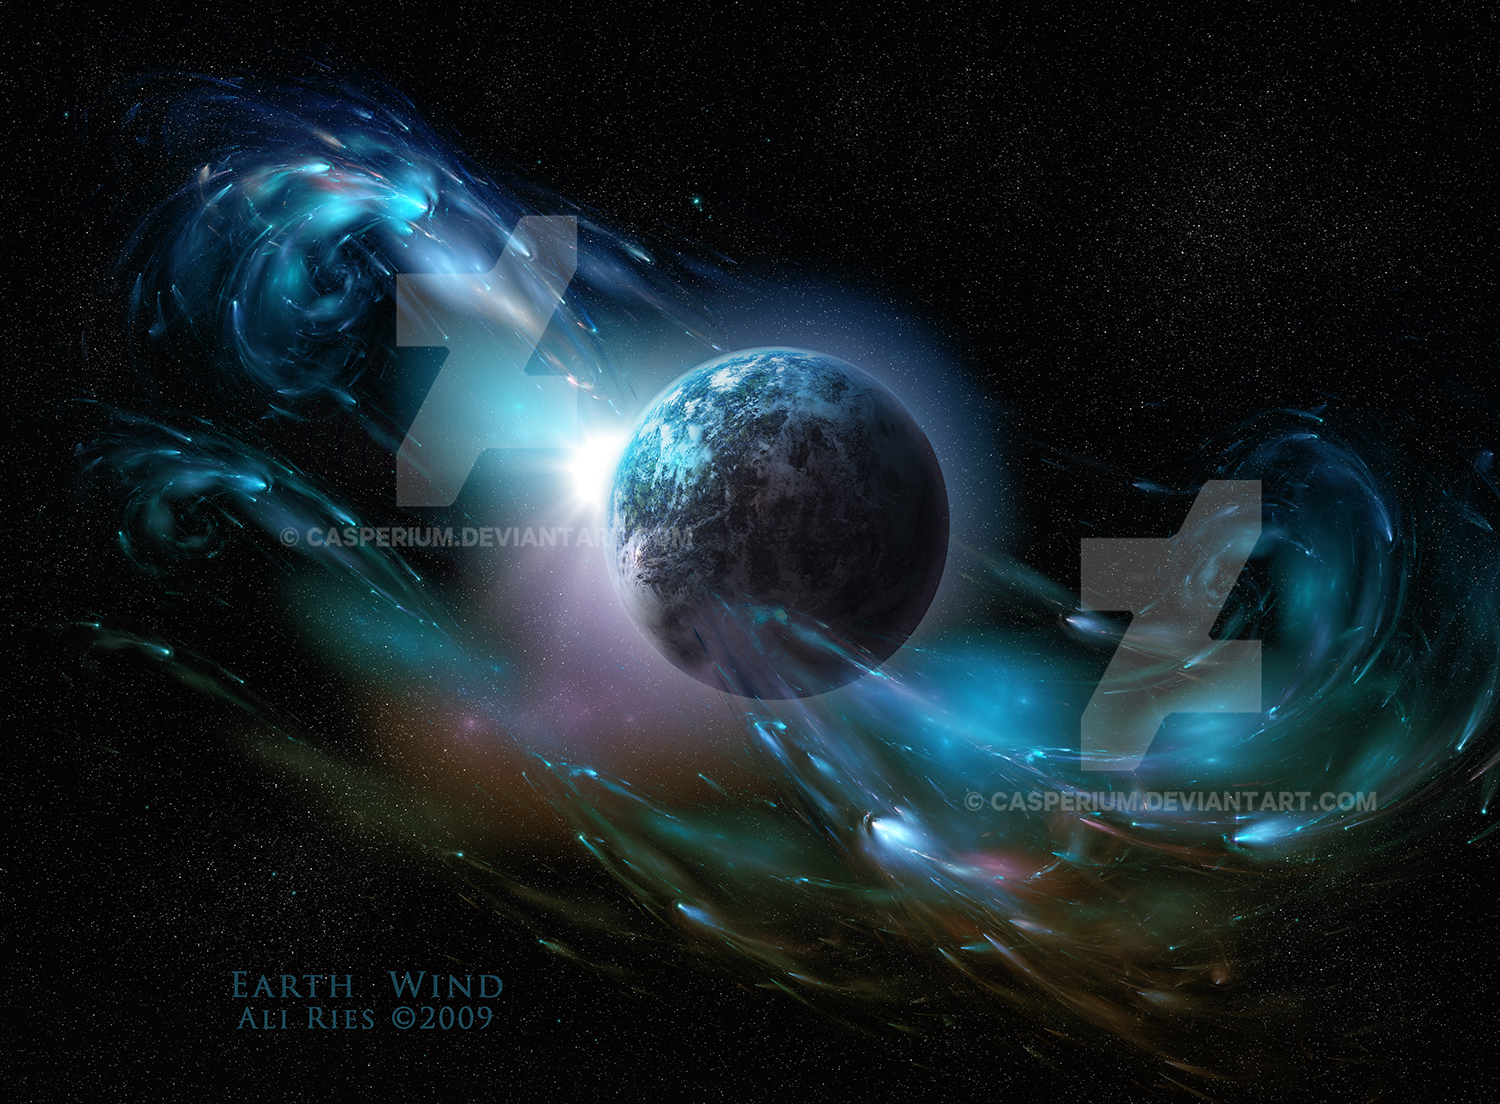 Earth Wind by Ali Ries 2009